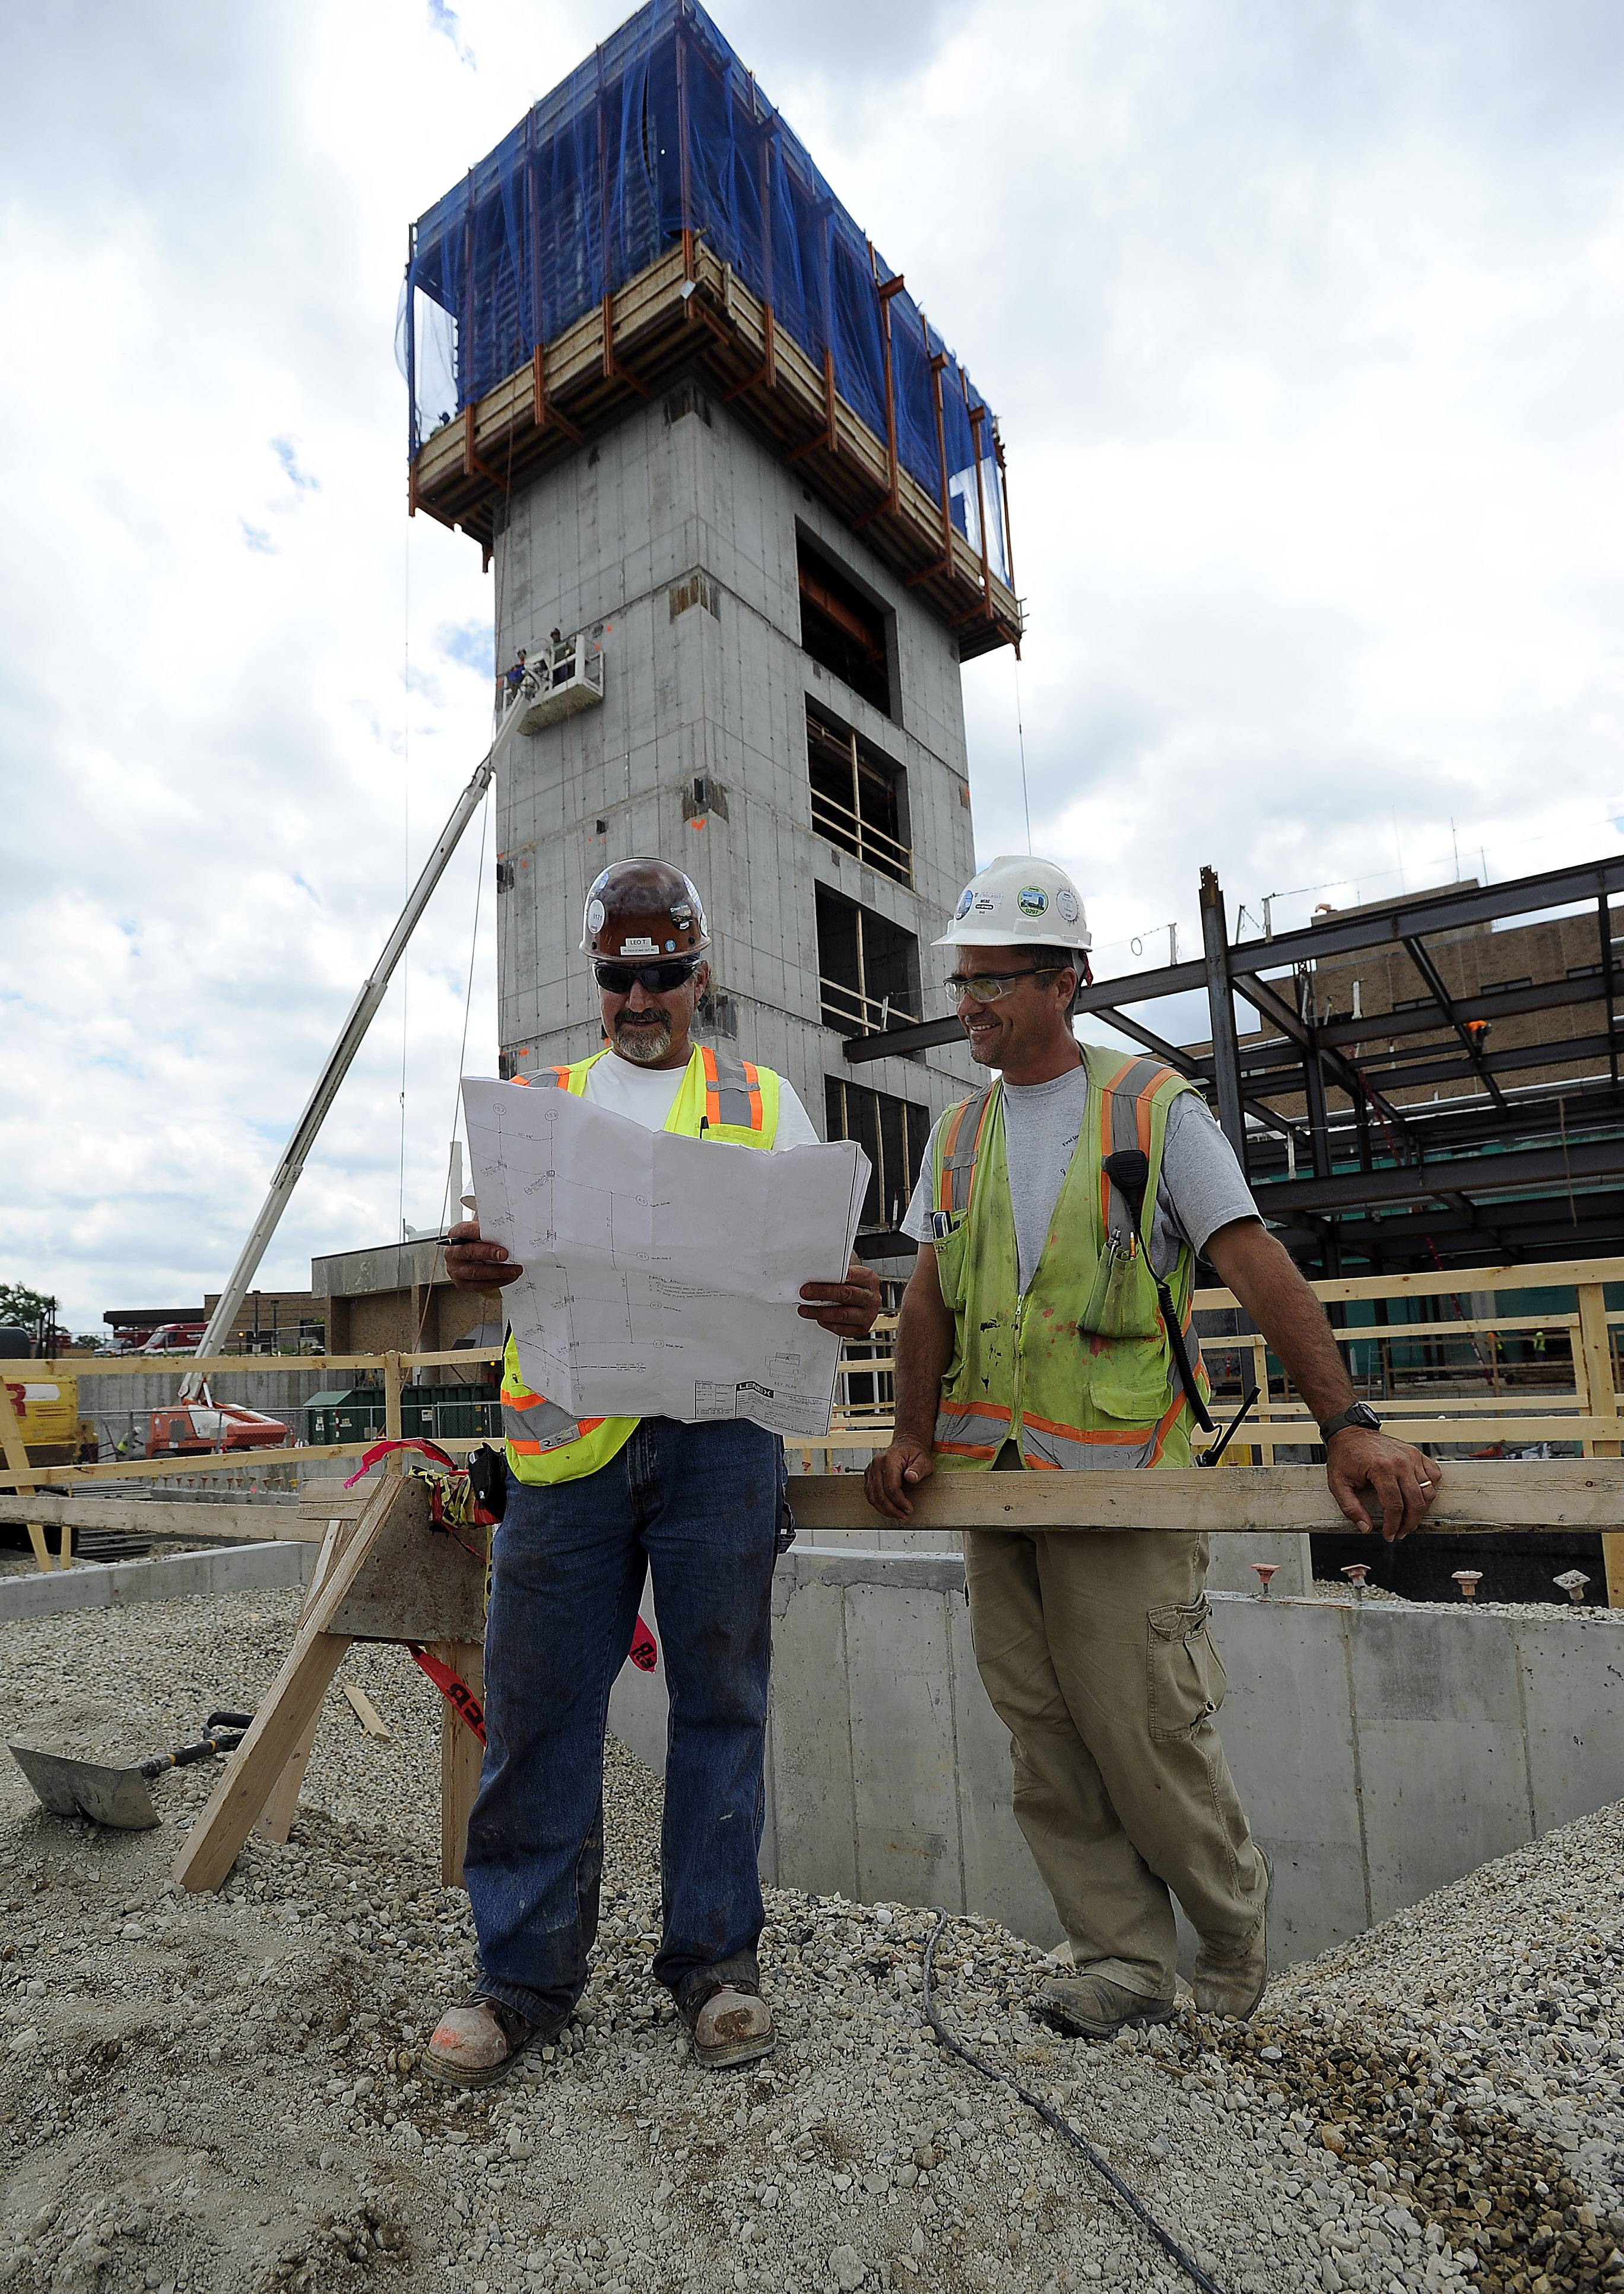 Technical engineers Leo Pamosiunas and Mike Kundrat look over plans that are part of the $247 million modernization effort at Advocate Good Shepherd Hospital near Lake Barrington. The work includes a new main entrance and an addition that will allow for single-only rooms at the facility.